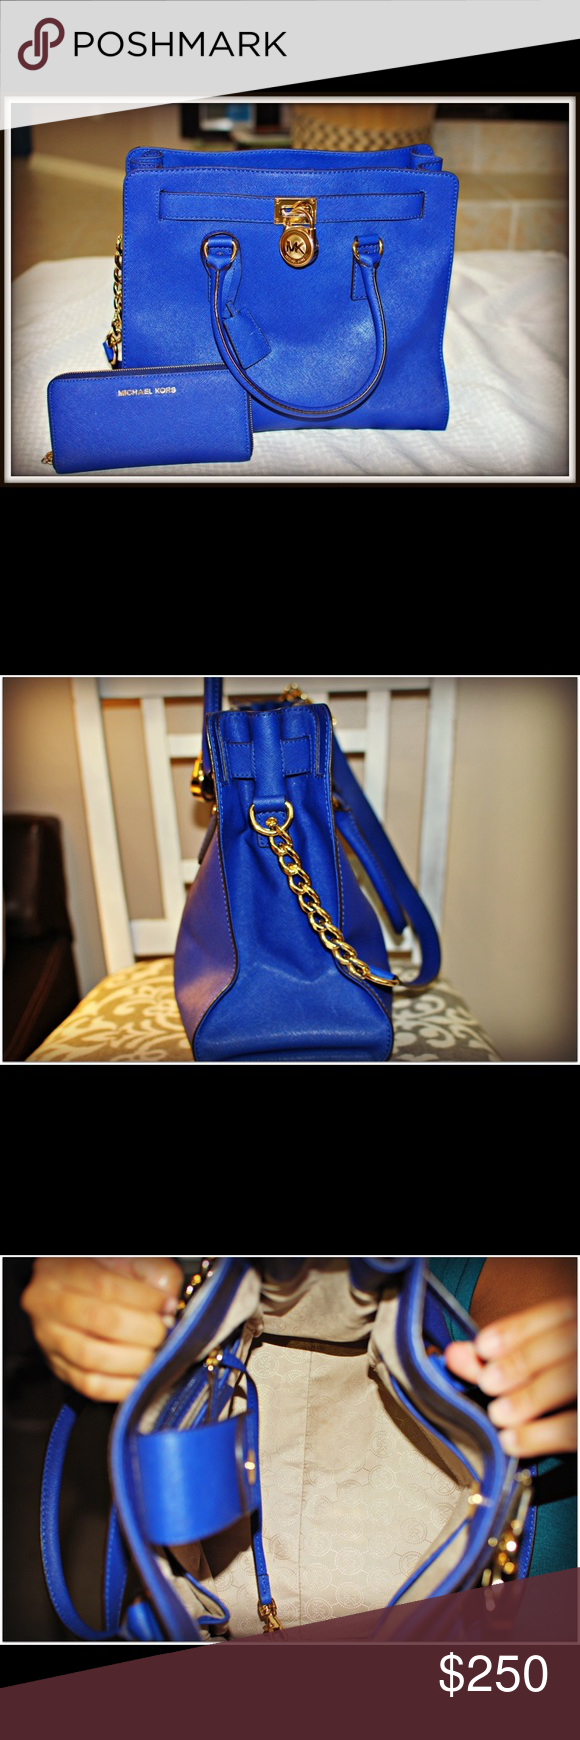 Michael Kors Hamilton Tote Michael Kors Hamilton Tote, Saffiiano Leather in Electric Blue color, gold hardware, magnetic clip top. Gently used with no flaws, in great condition. Wallet can be bundled. Feel free to ask me questions!! Michael Kors Bags Totes